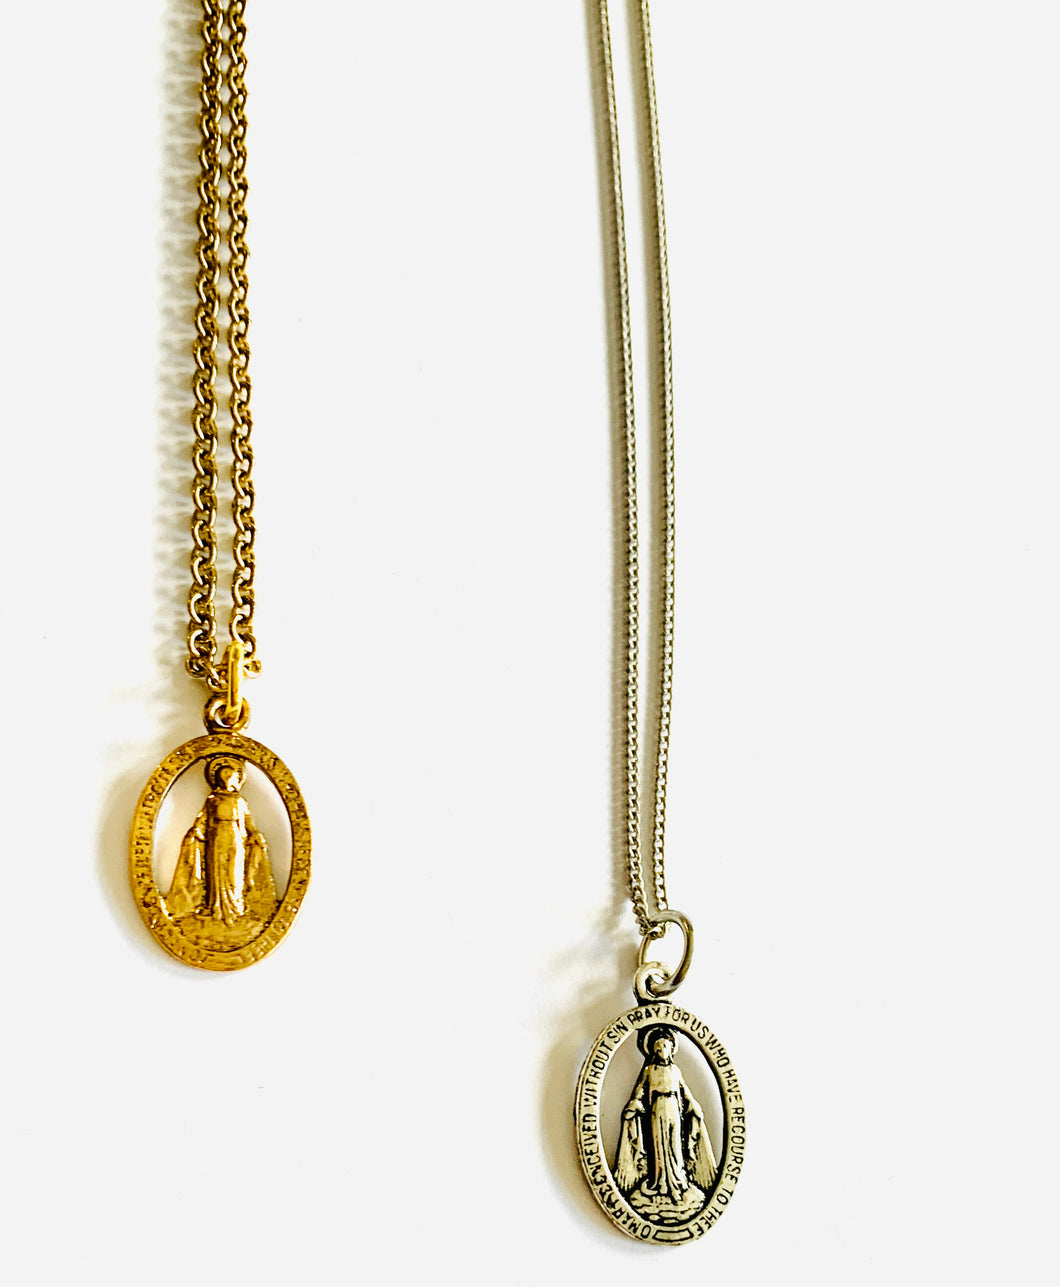 Dainty Religious Medal Necklace